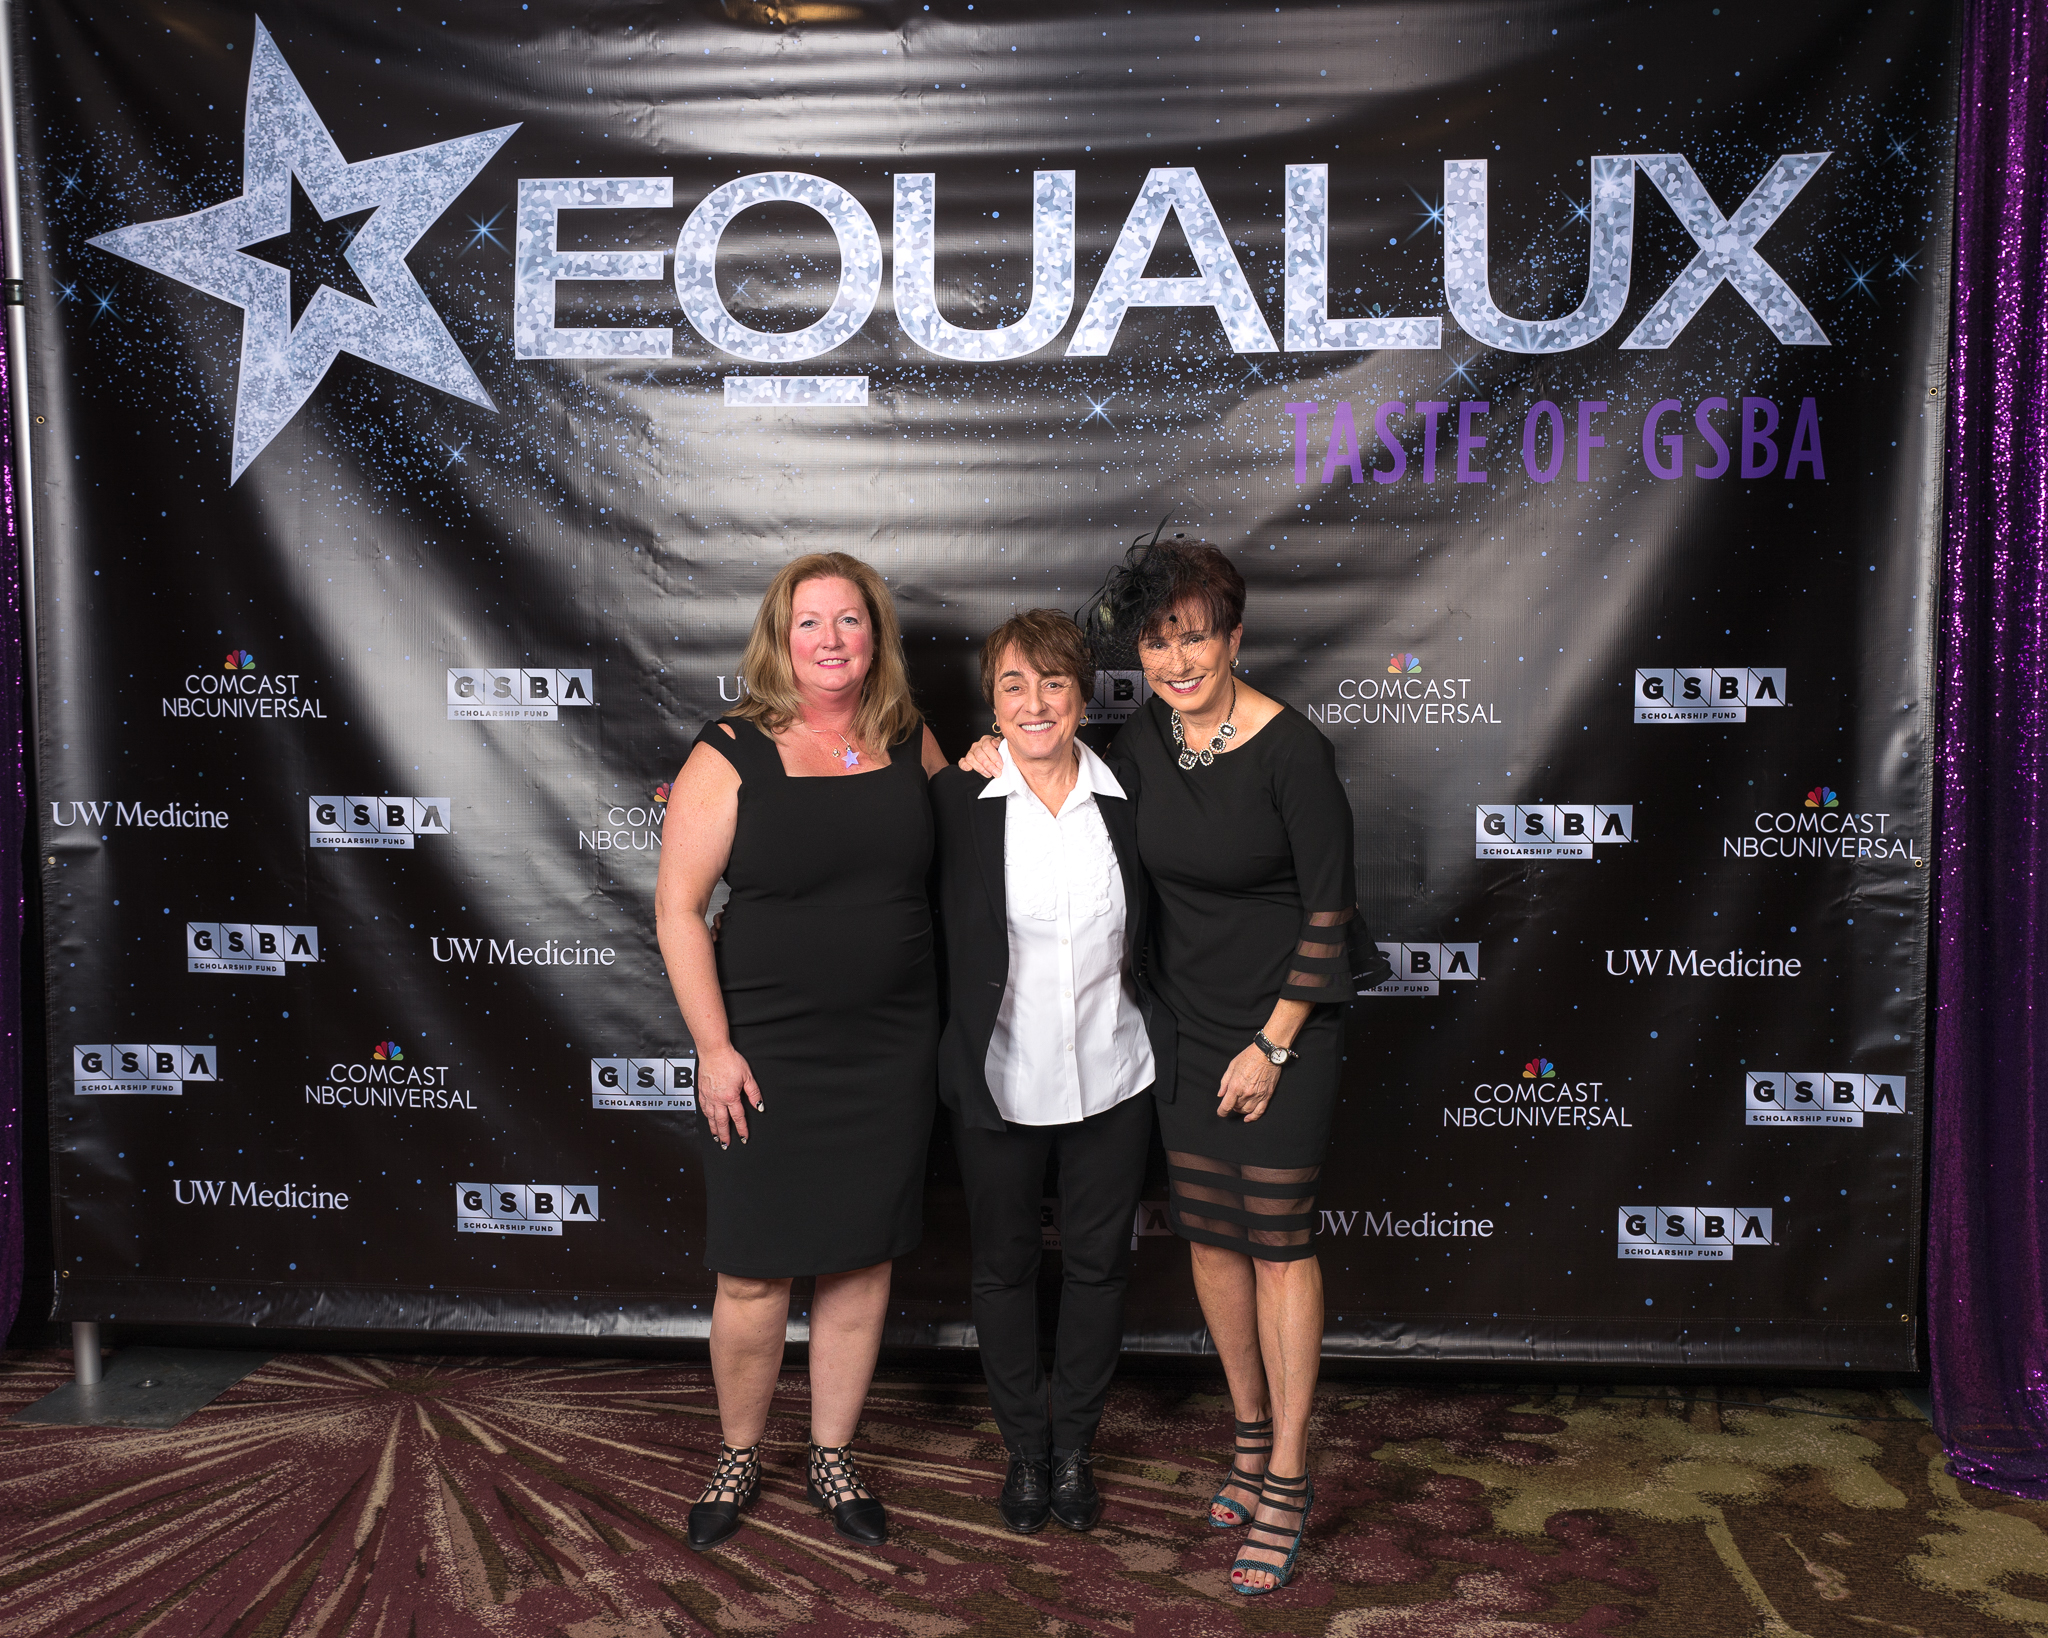 111718_GSBA EQUALUX at The Westin Seattle (Credit- Nate Gowdy)-106.jpg